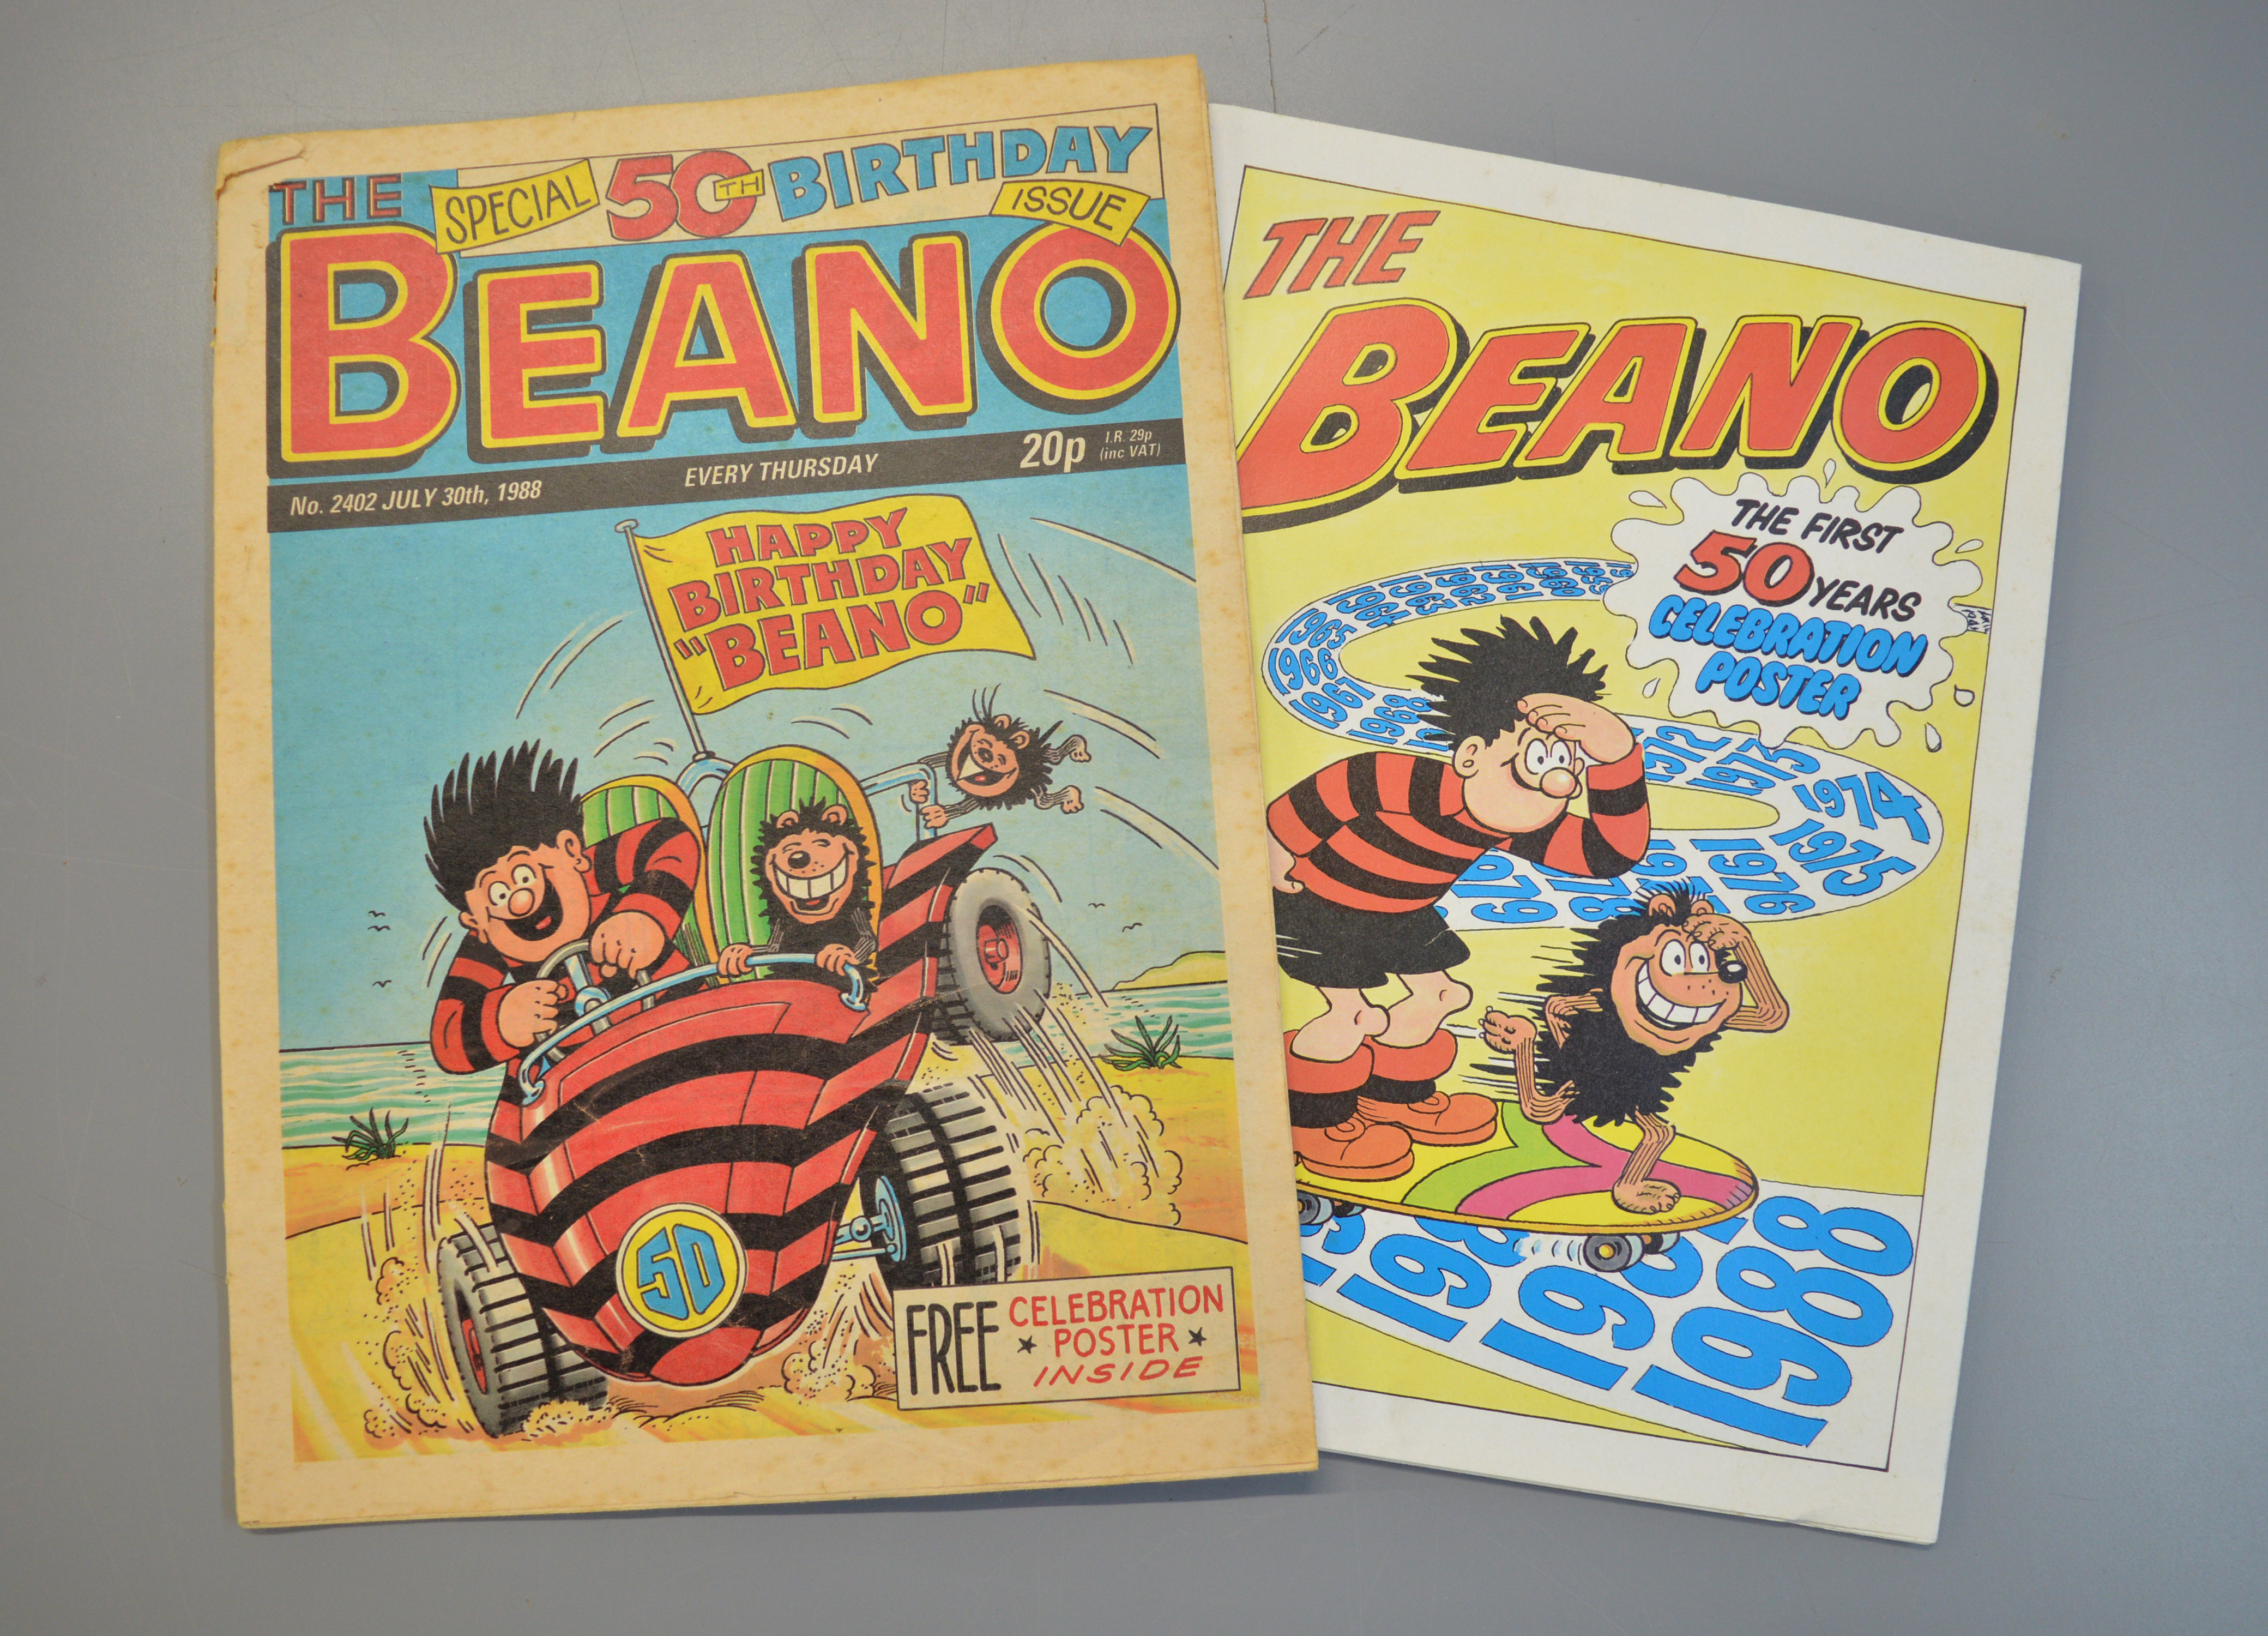 Lot 309 - Beano comic, July 30th 1988, The Special 50th Birthday issue, complete with Beano poster.